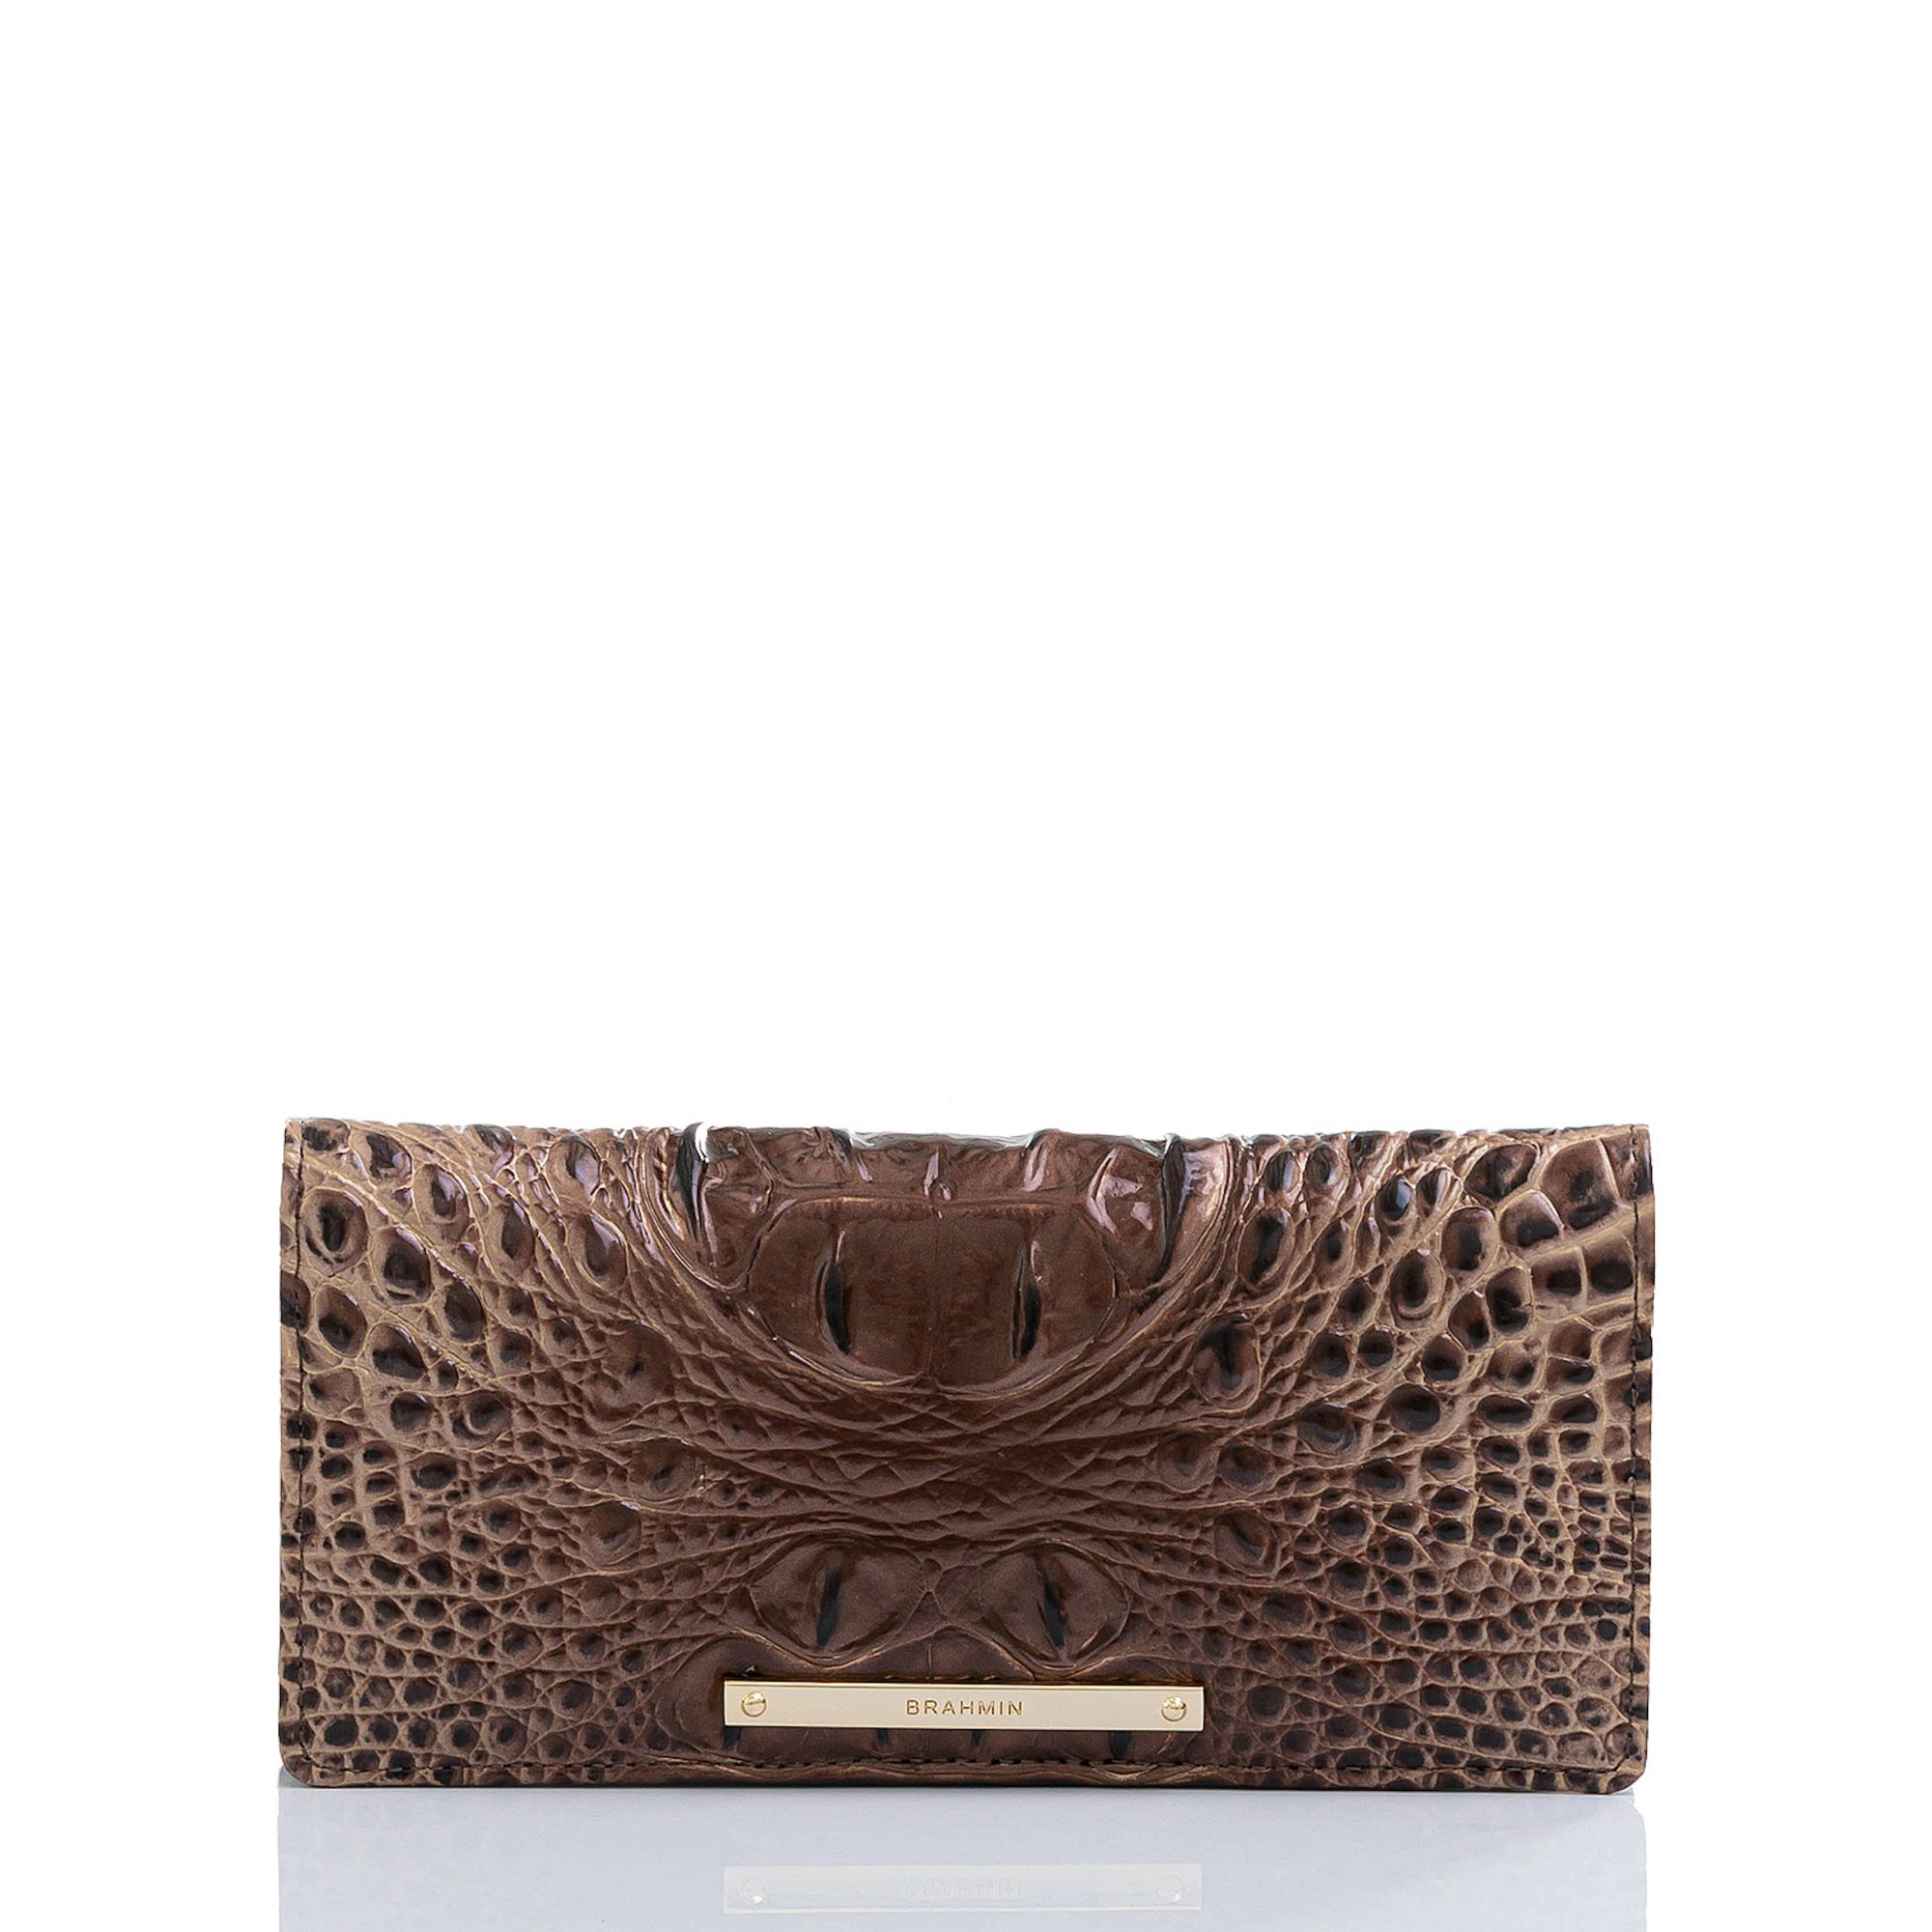 """Sarah Ball, Market Editor:I always find myself wishing I had a nice wallet, but never seem to buy one for myself, so I'm putting this mocha leather croc-embossed beauty on my list this year. It's thin and offers a ton of convenient storage and the color is so rich looking and will go with everything.                             Buy it! Brahmin """"Ady"""" Wallet, $125; brahmin.com"""